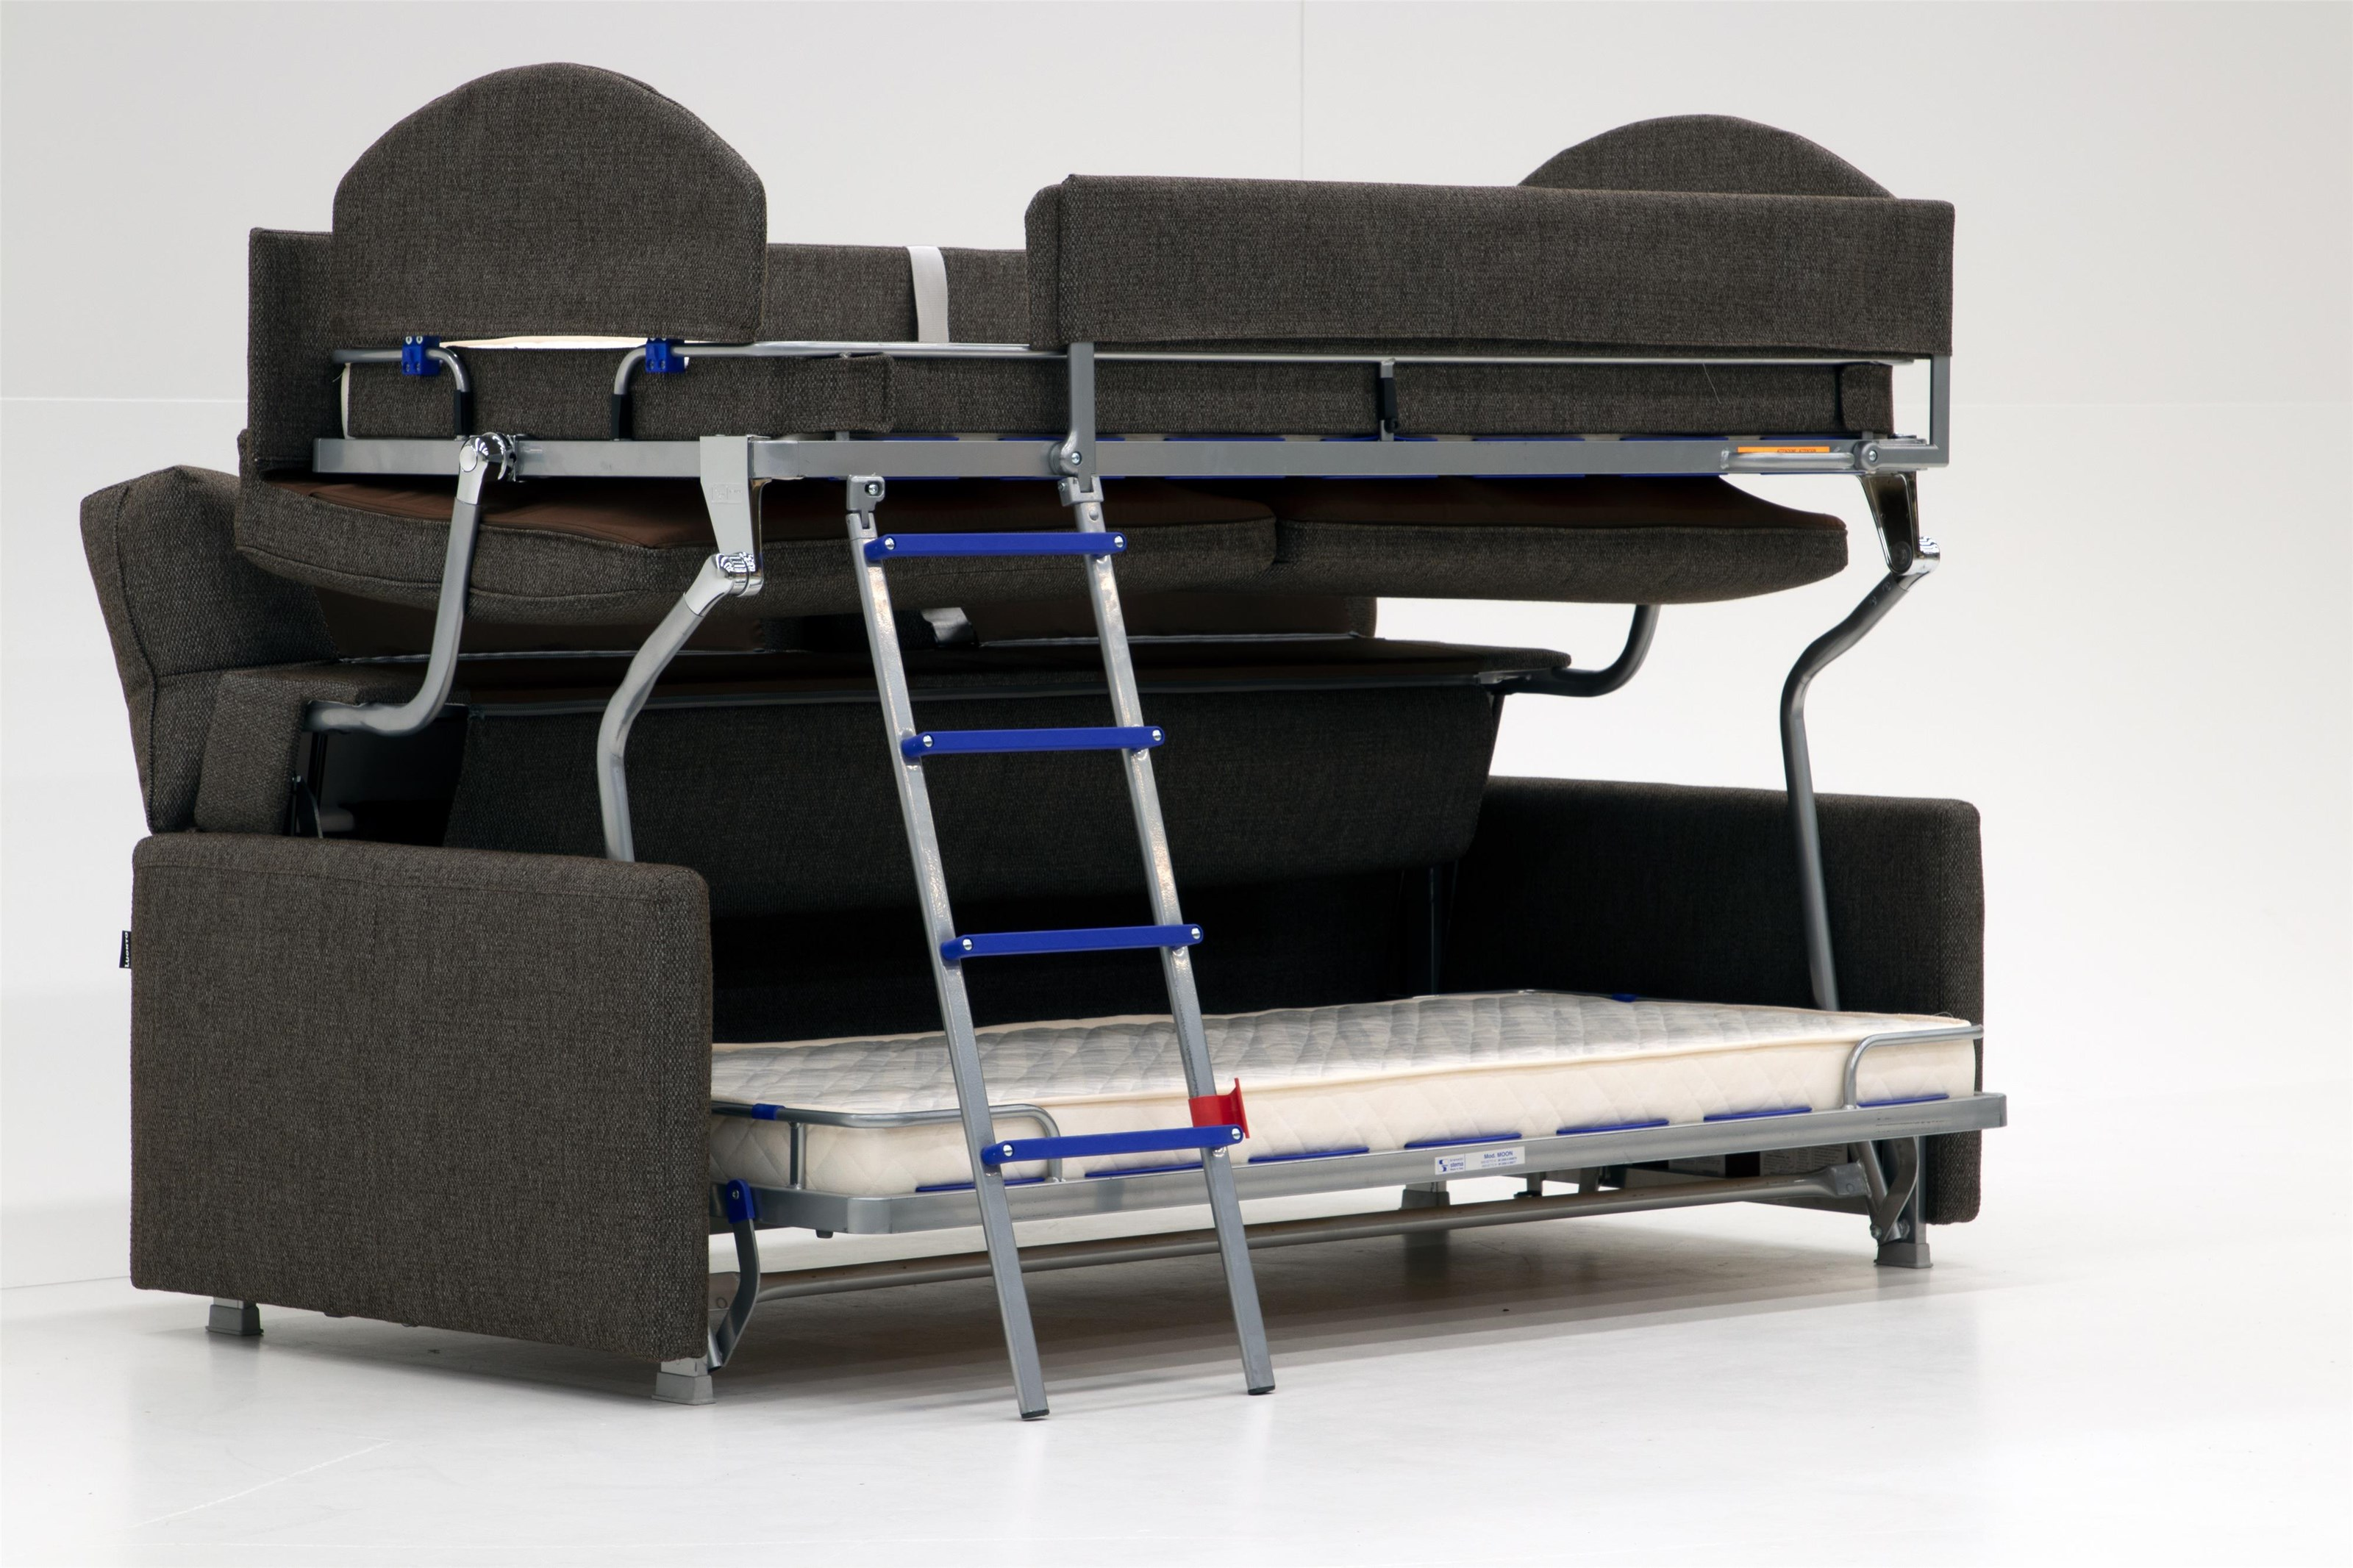 Elevate Bunk Bed Sleeper by Luonto at Belfort Furniture